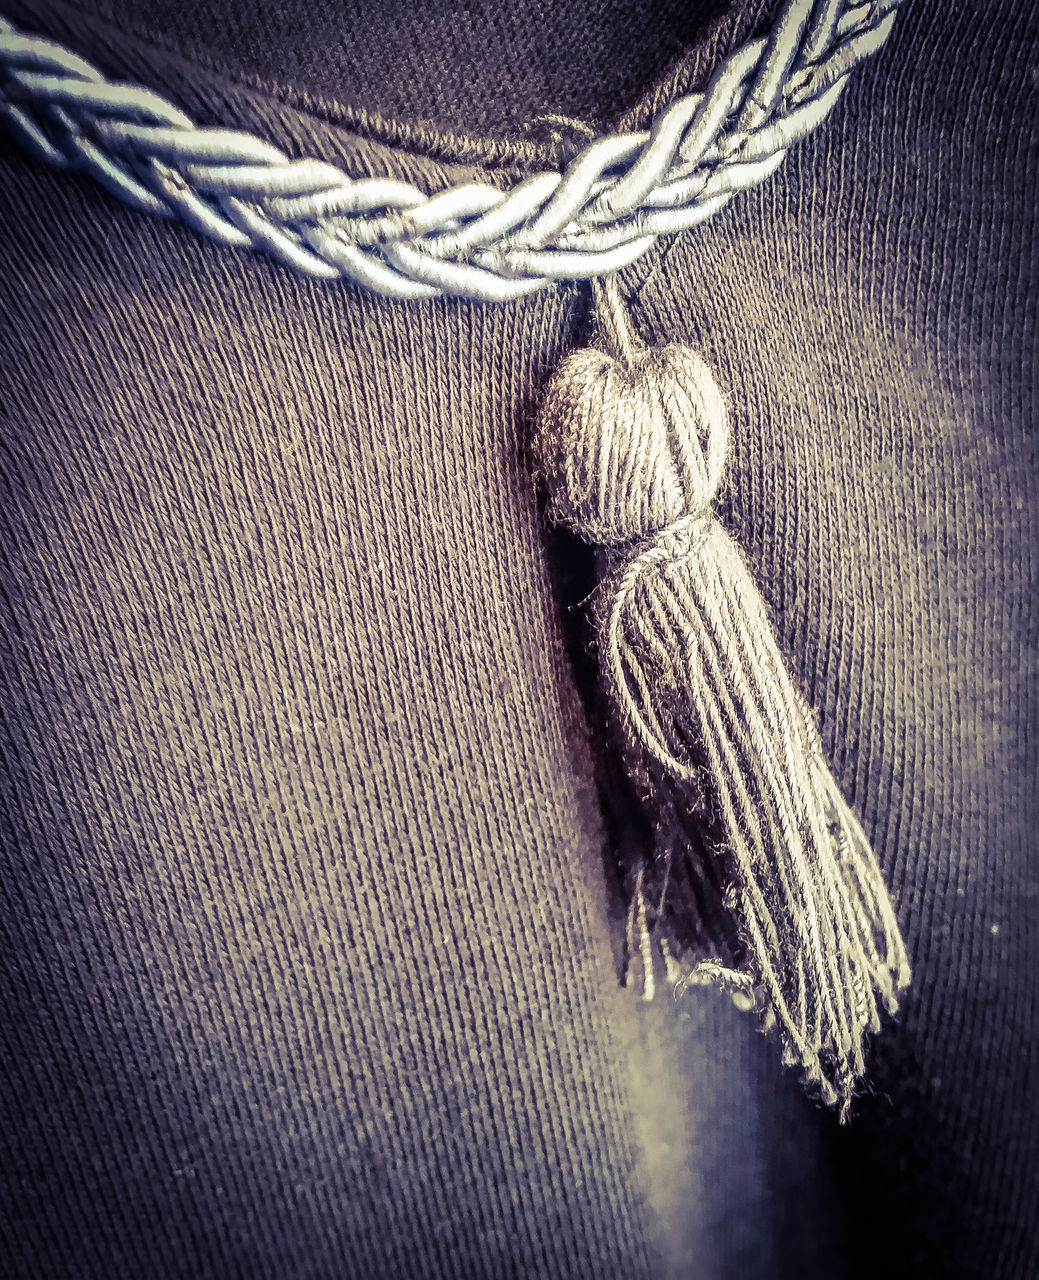 rope, tied knot, no people, indoors, textured, close-up, wool, tied up, braided, day